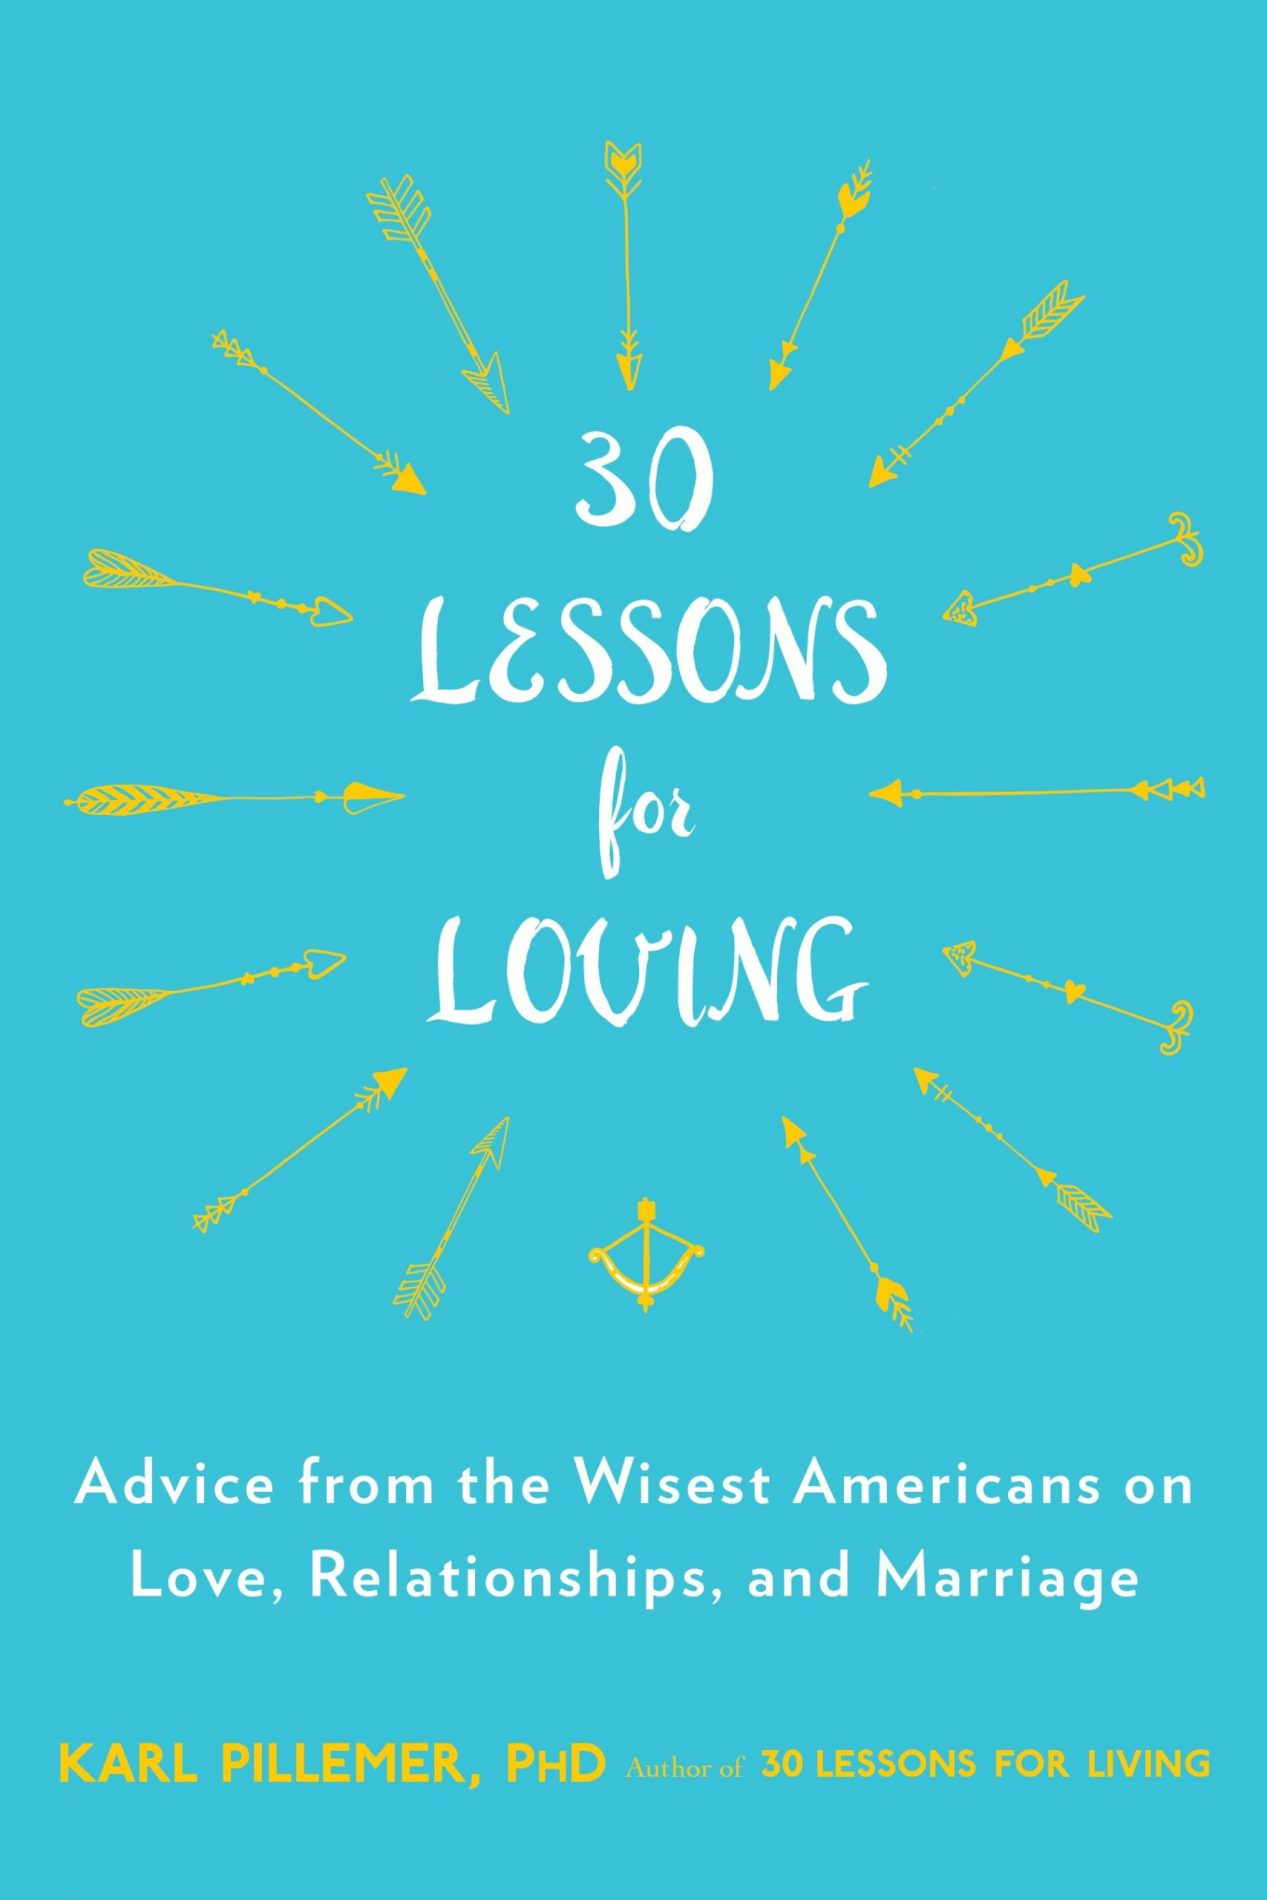 30 Lessons for Loving